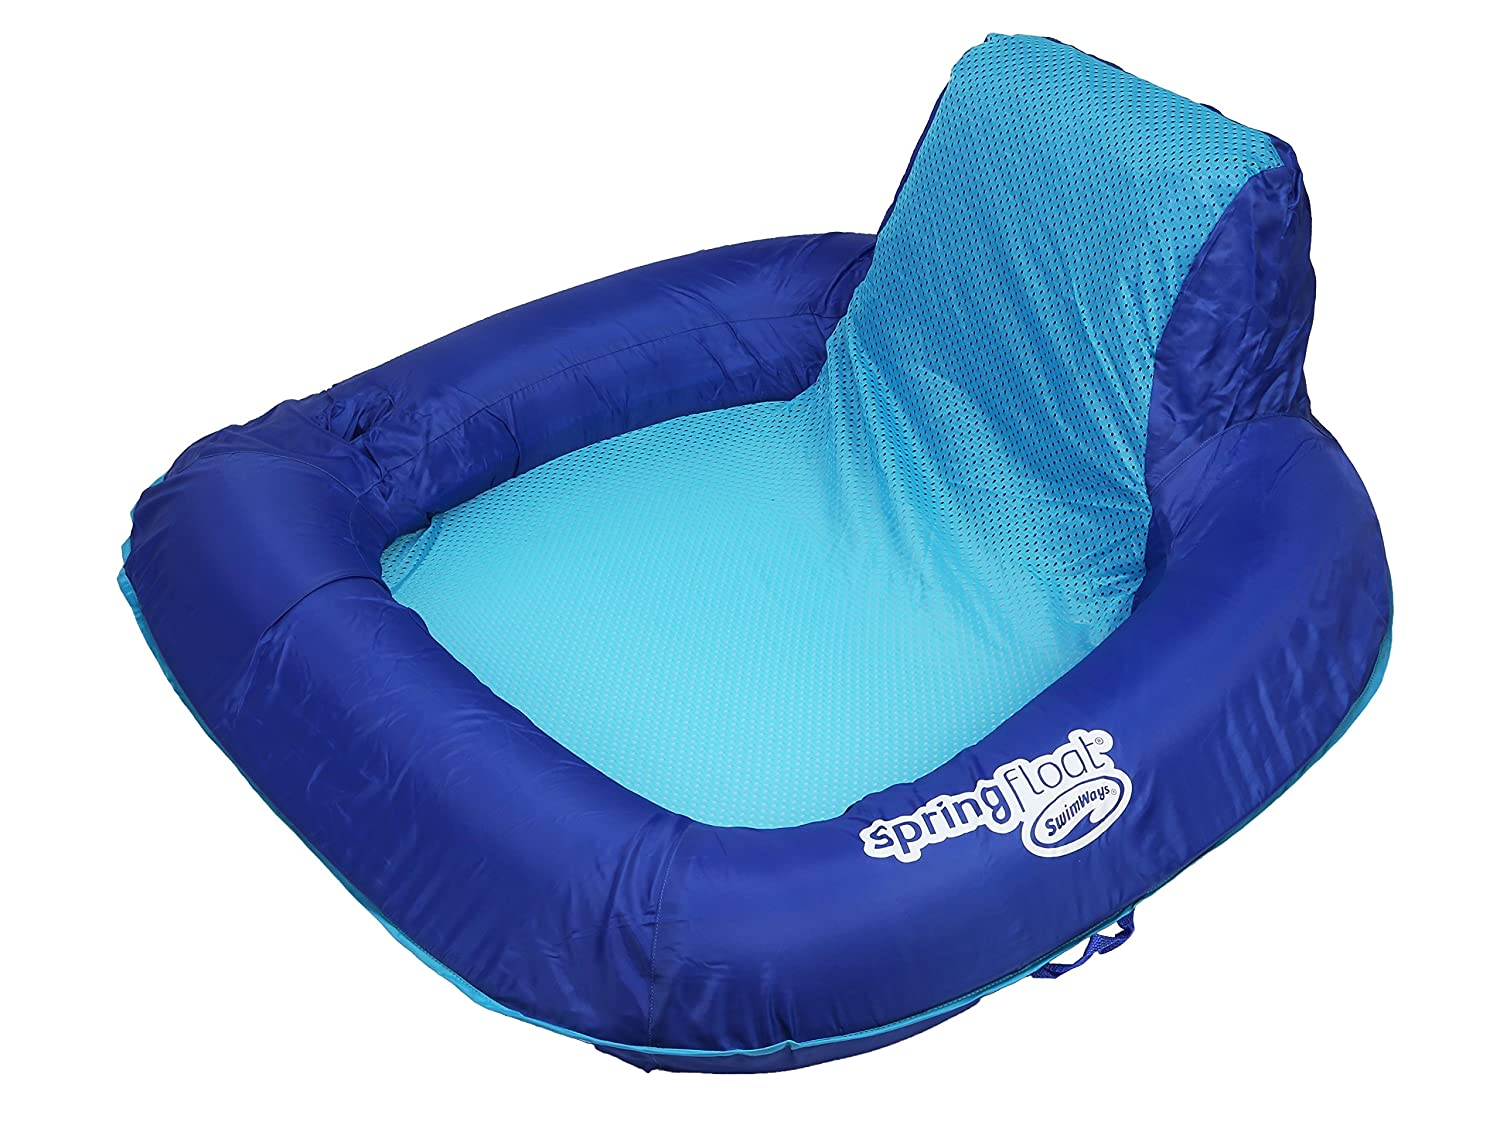 sc 1 st  Amazon.com & Amazon.com: SwimWays Spring Float SunSeat: Toys u0026 Games islam-shia.org